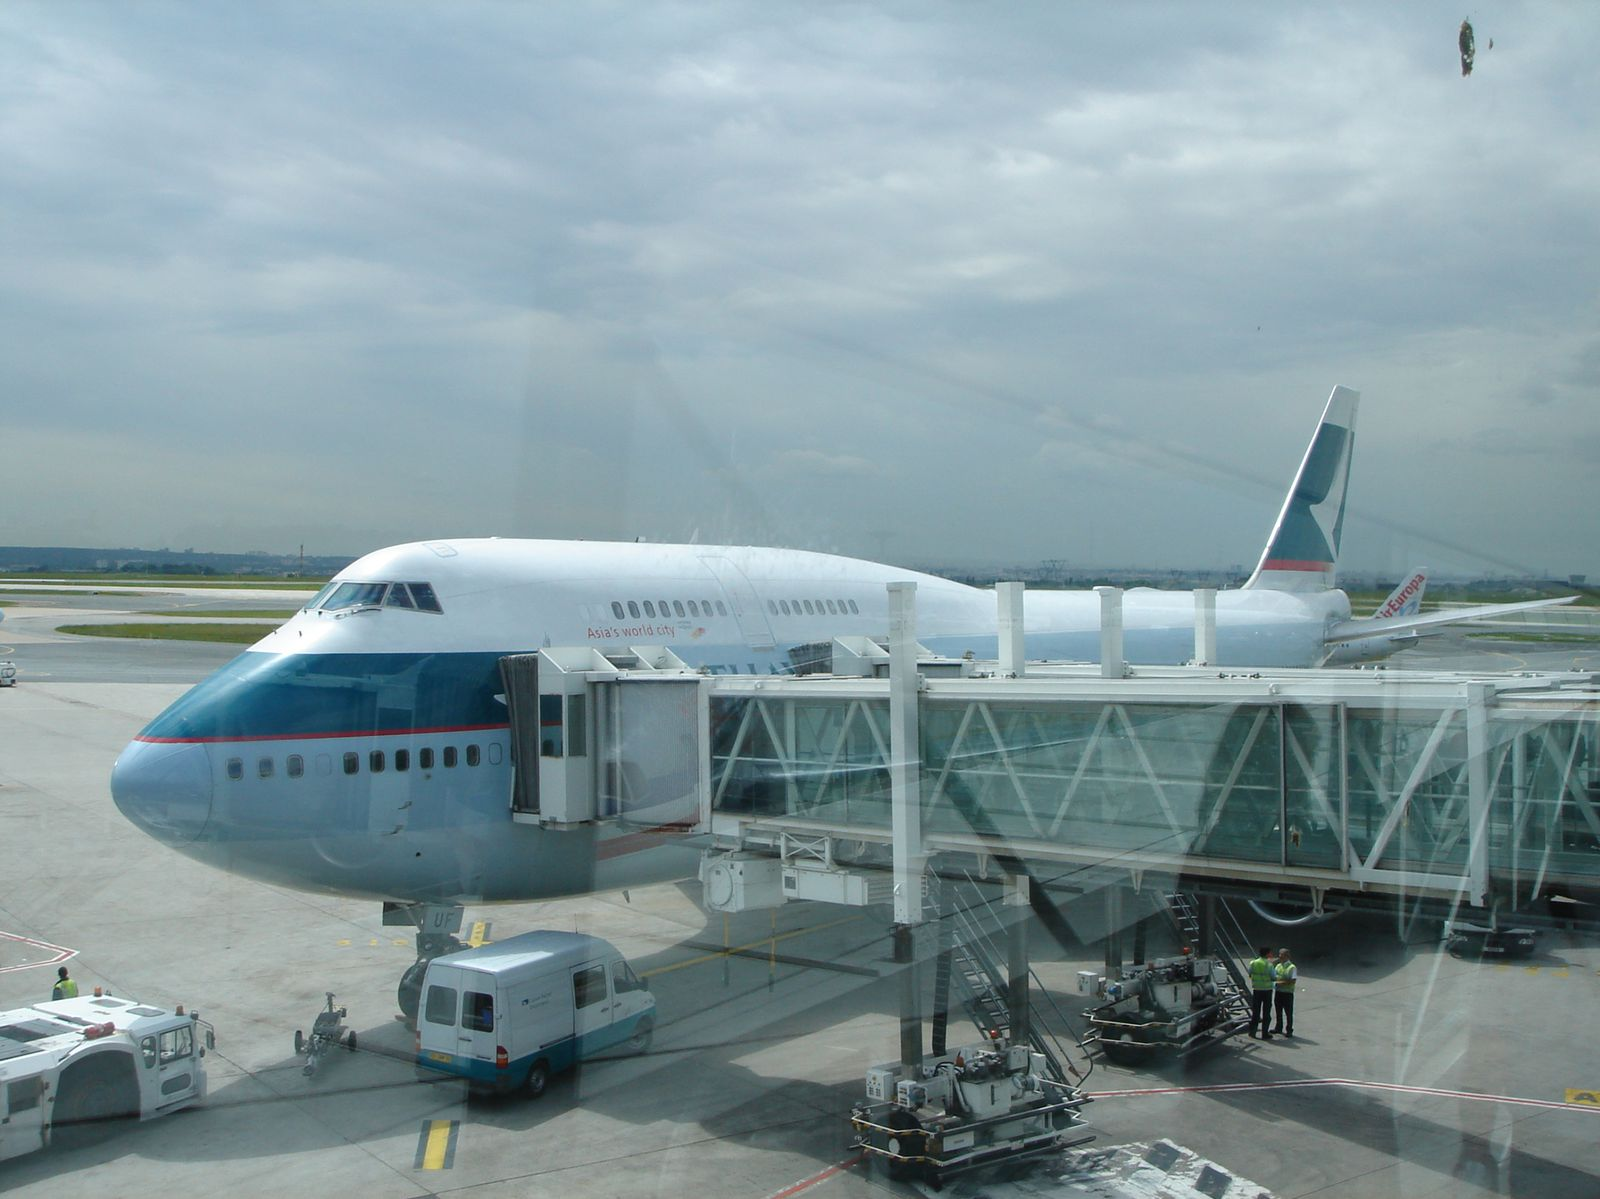 Voyage la t te en bas 1 an en nouvelle z lande for Avion 747 interieur